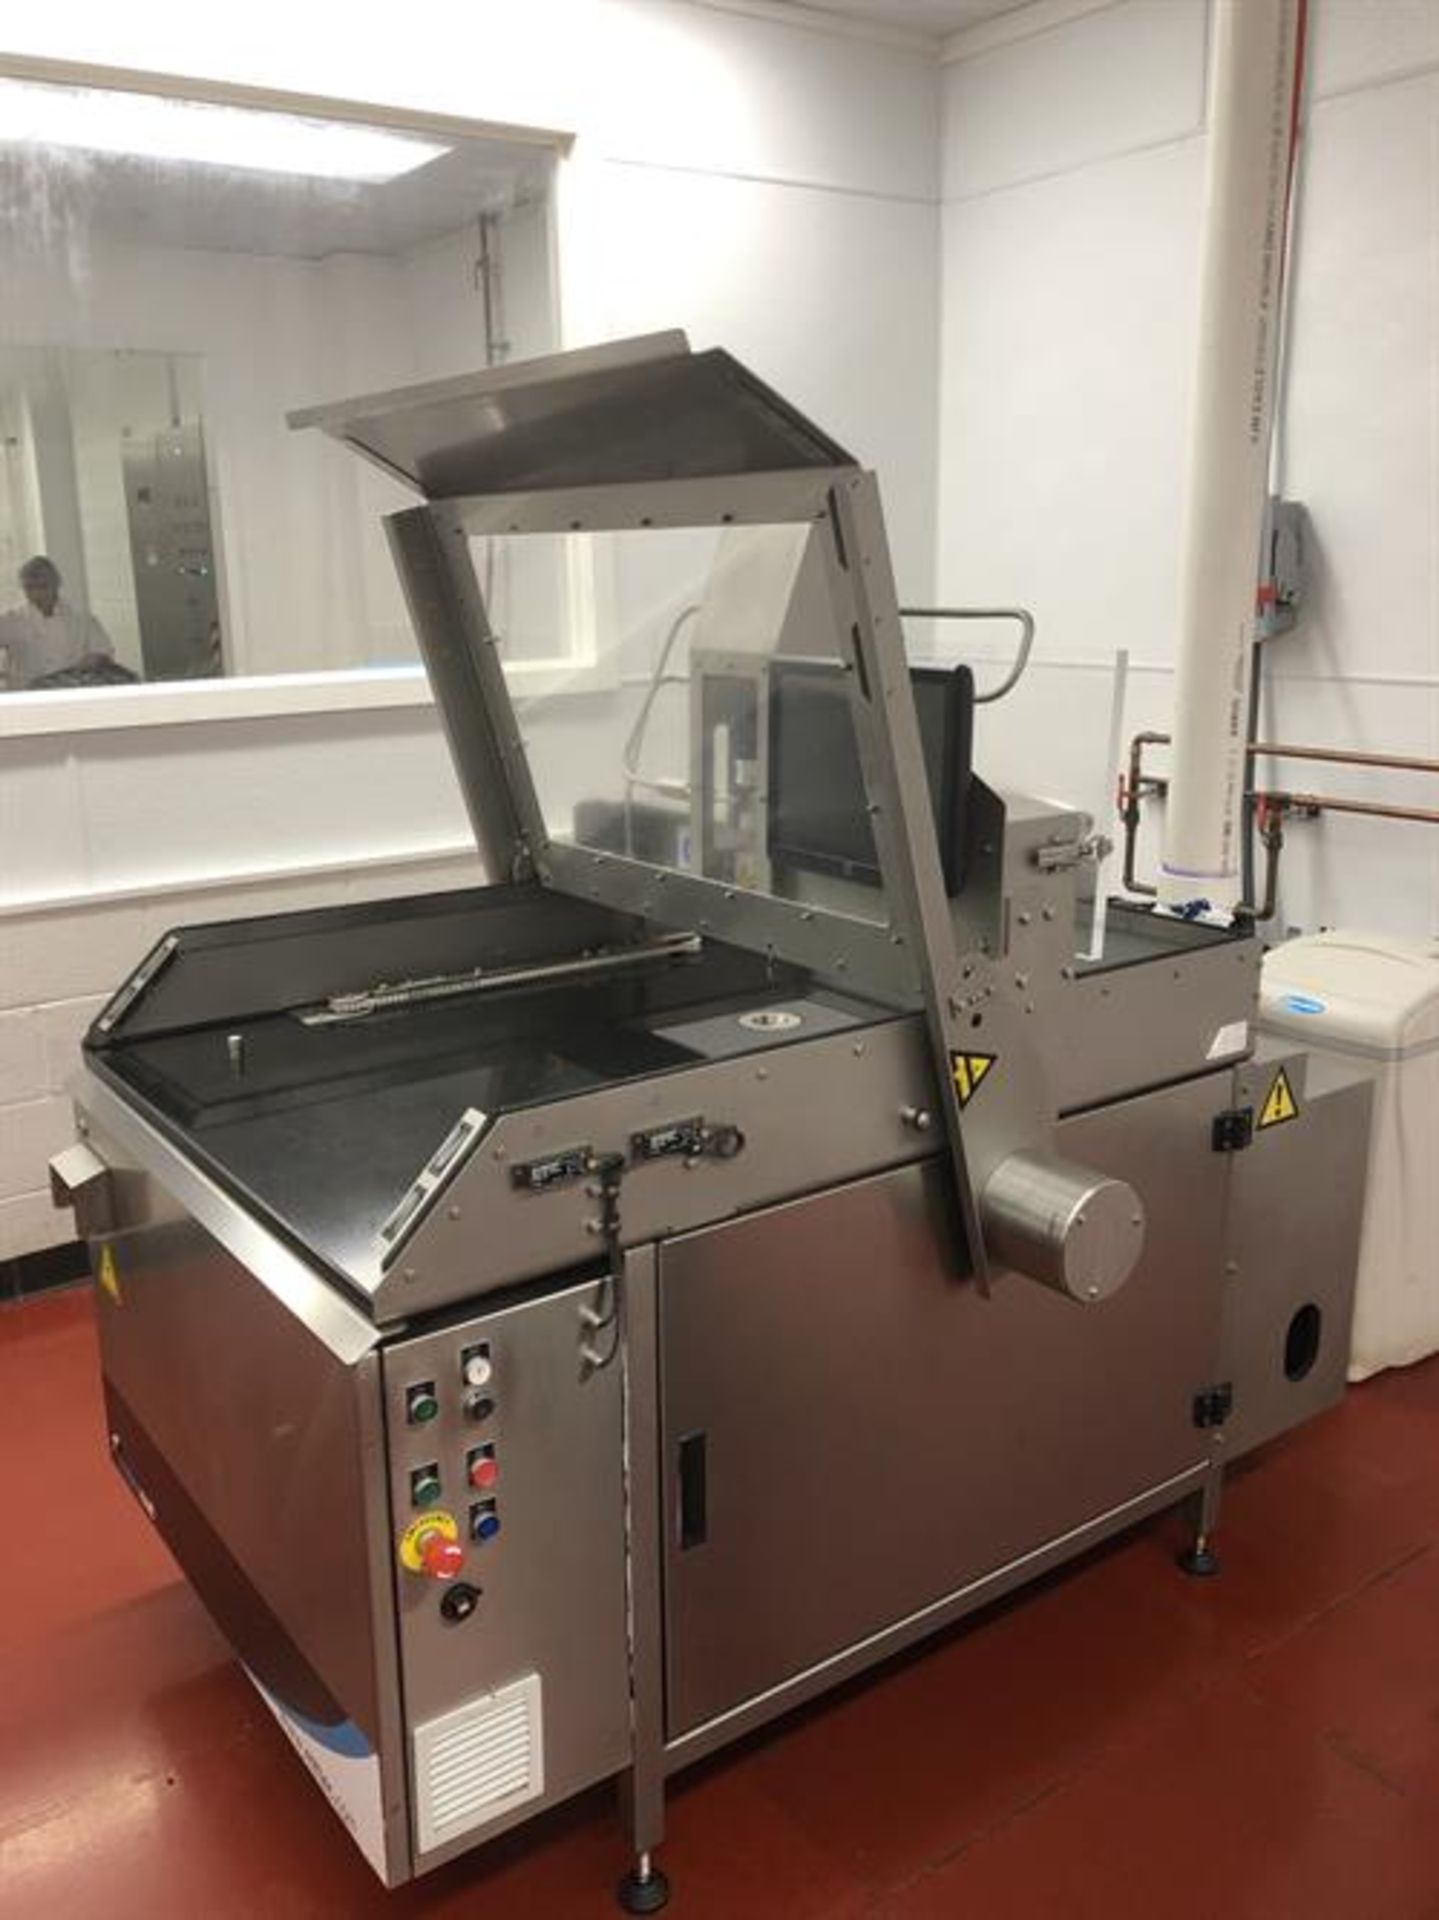 Lot 19 - Metronics Technologies Watercut 172LC Pastry Cutter - Maximum dimensions of product to be cut: 600 x